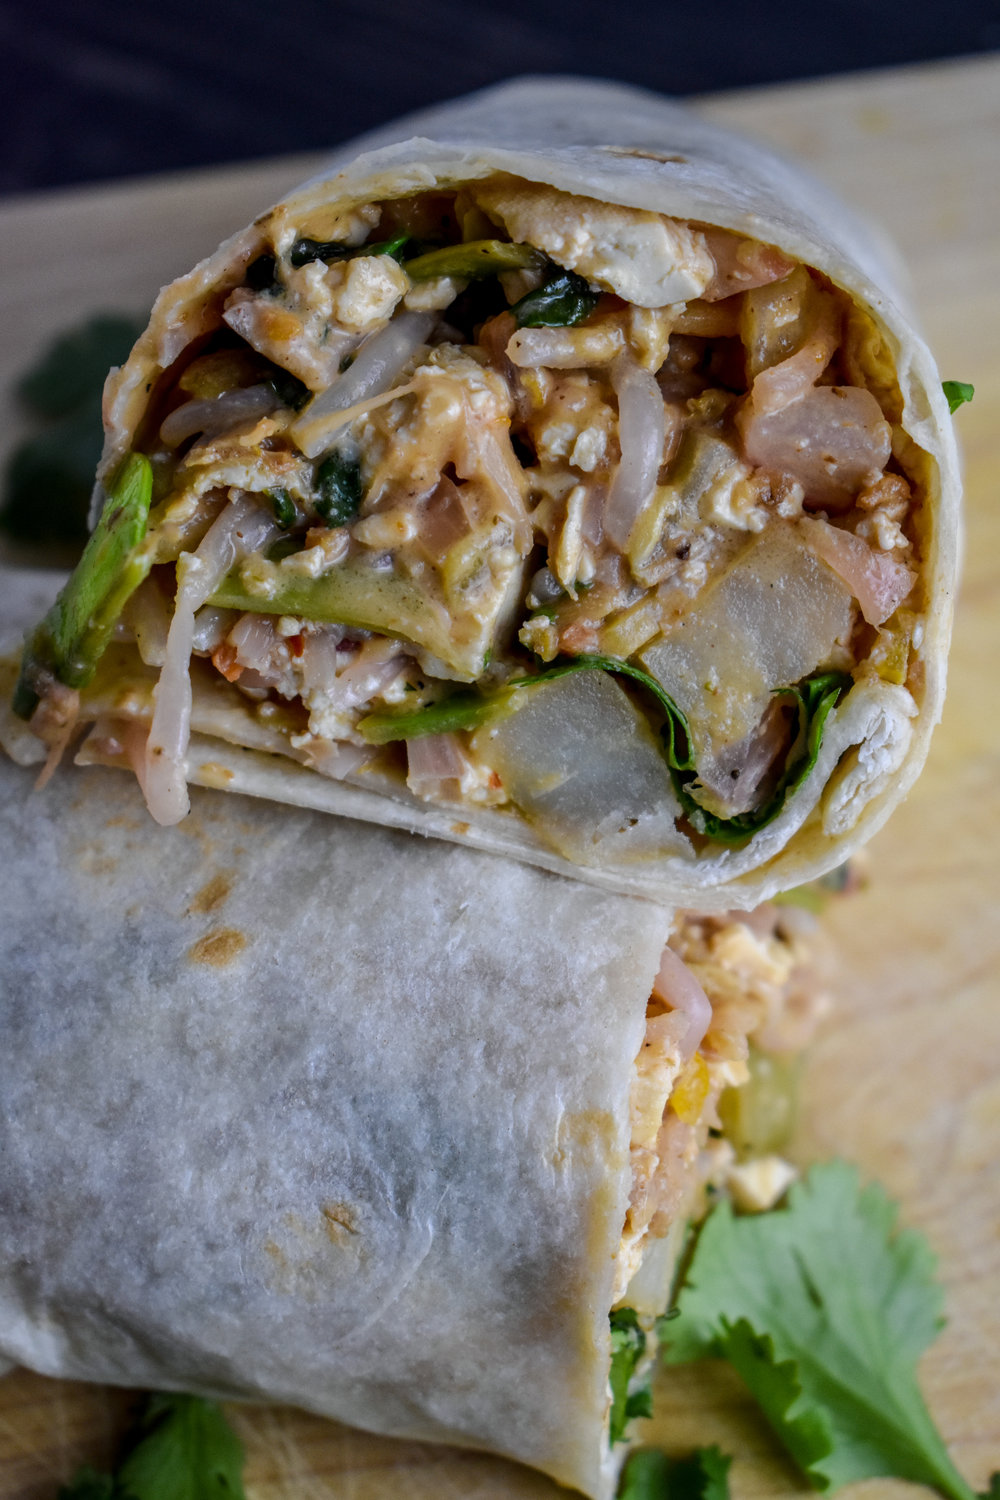 7. Roll your burrito, slice in 1/2, ENJOY!